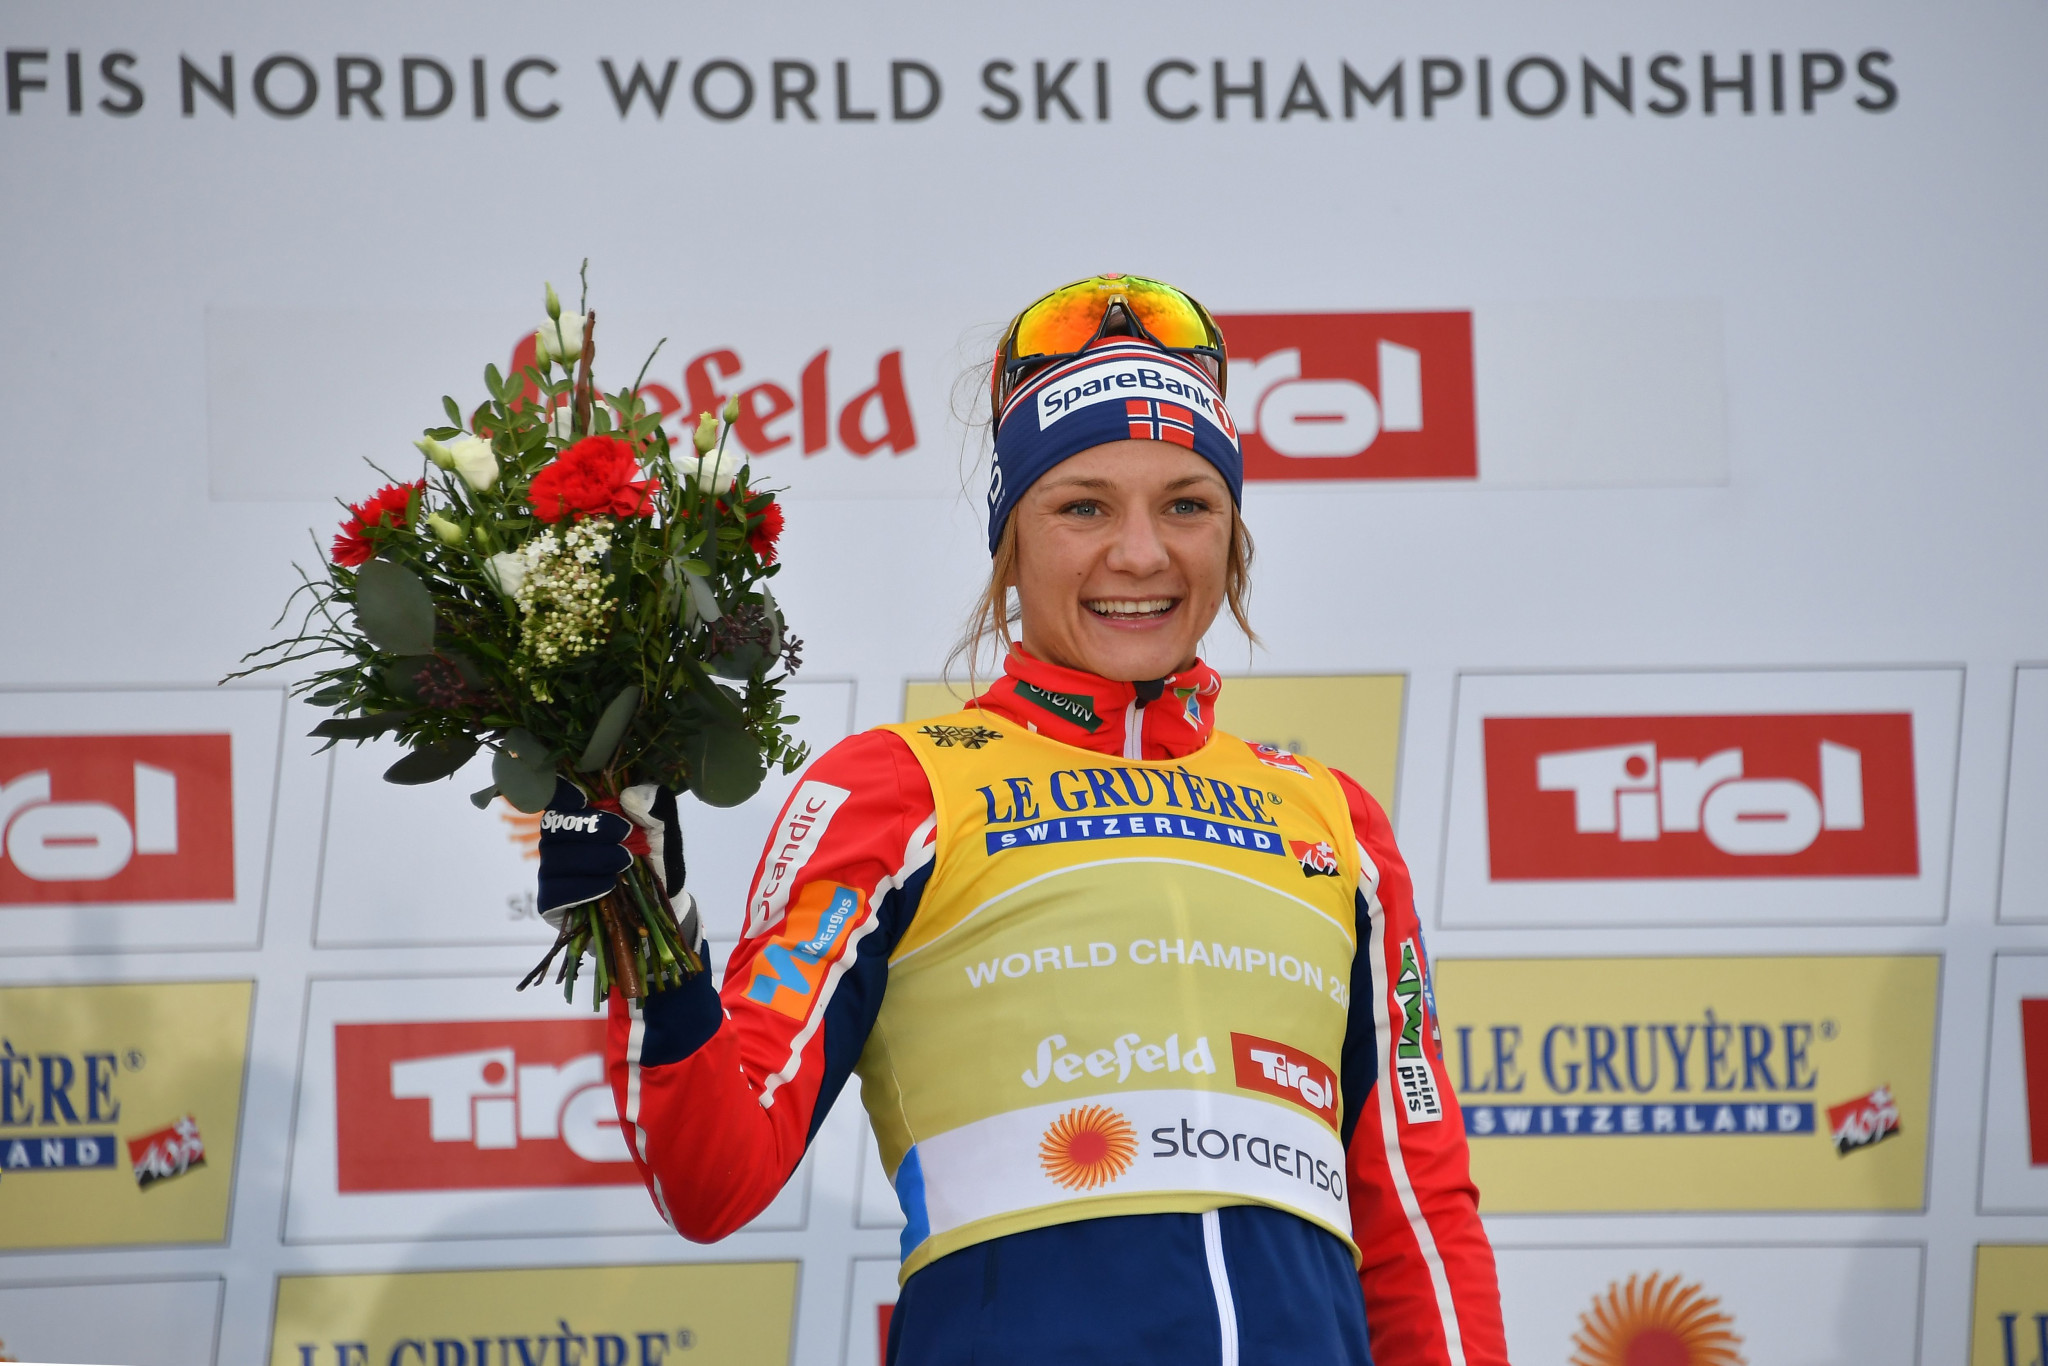 Norway's Maiken Caspersen Falla defended her world title in the women's event ©Getty Images